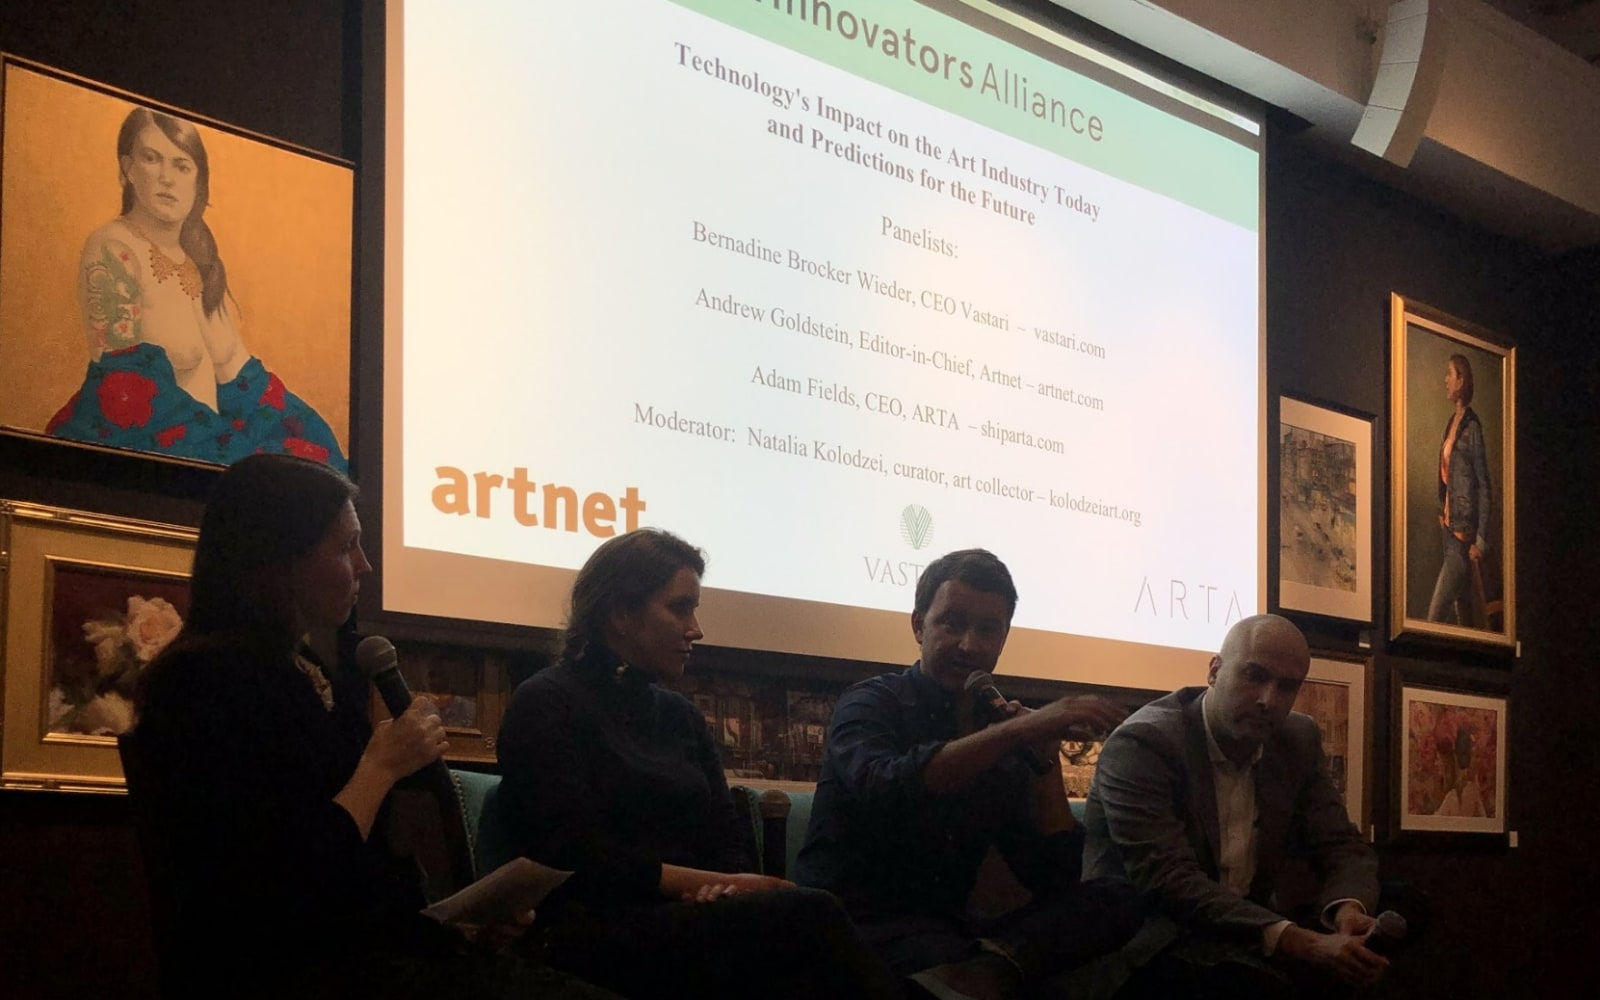 Technology's Impact on the Art Industry Today & Predictions for the Future